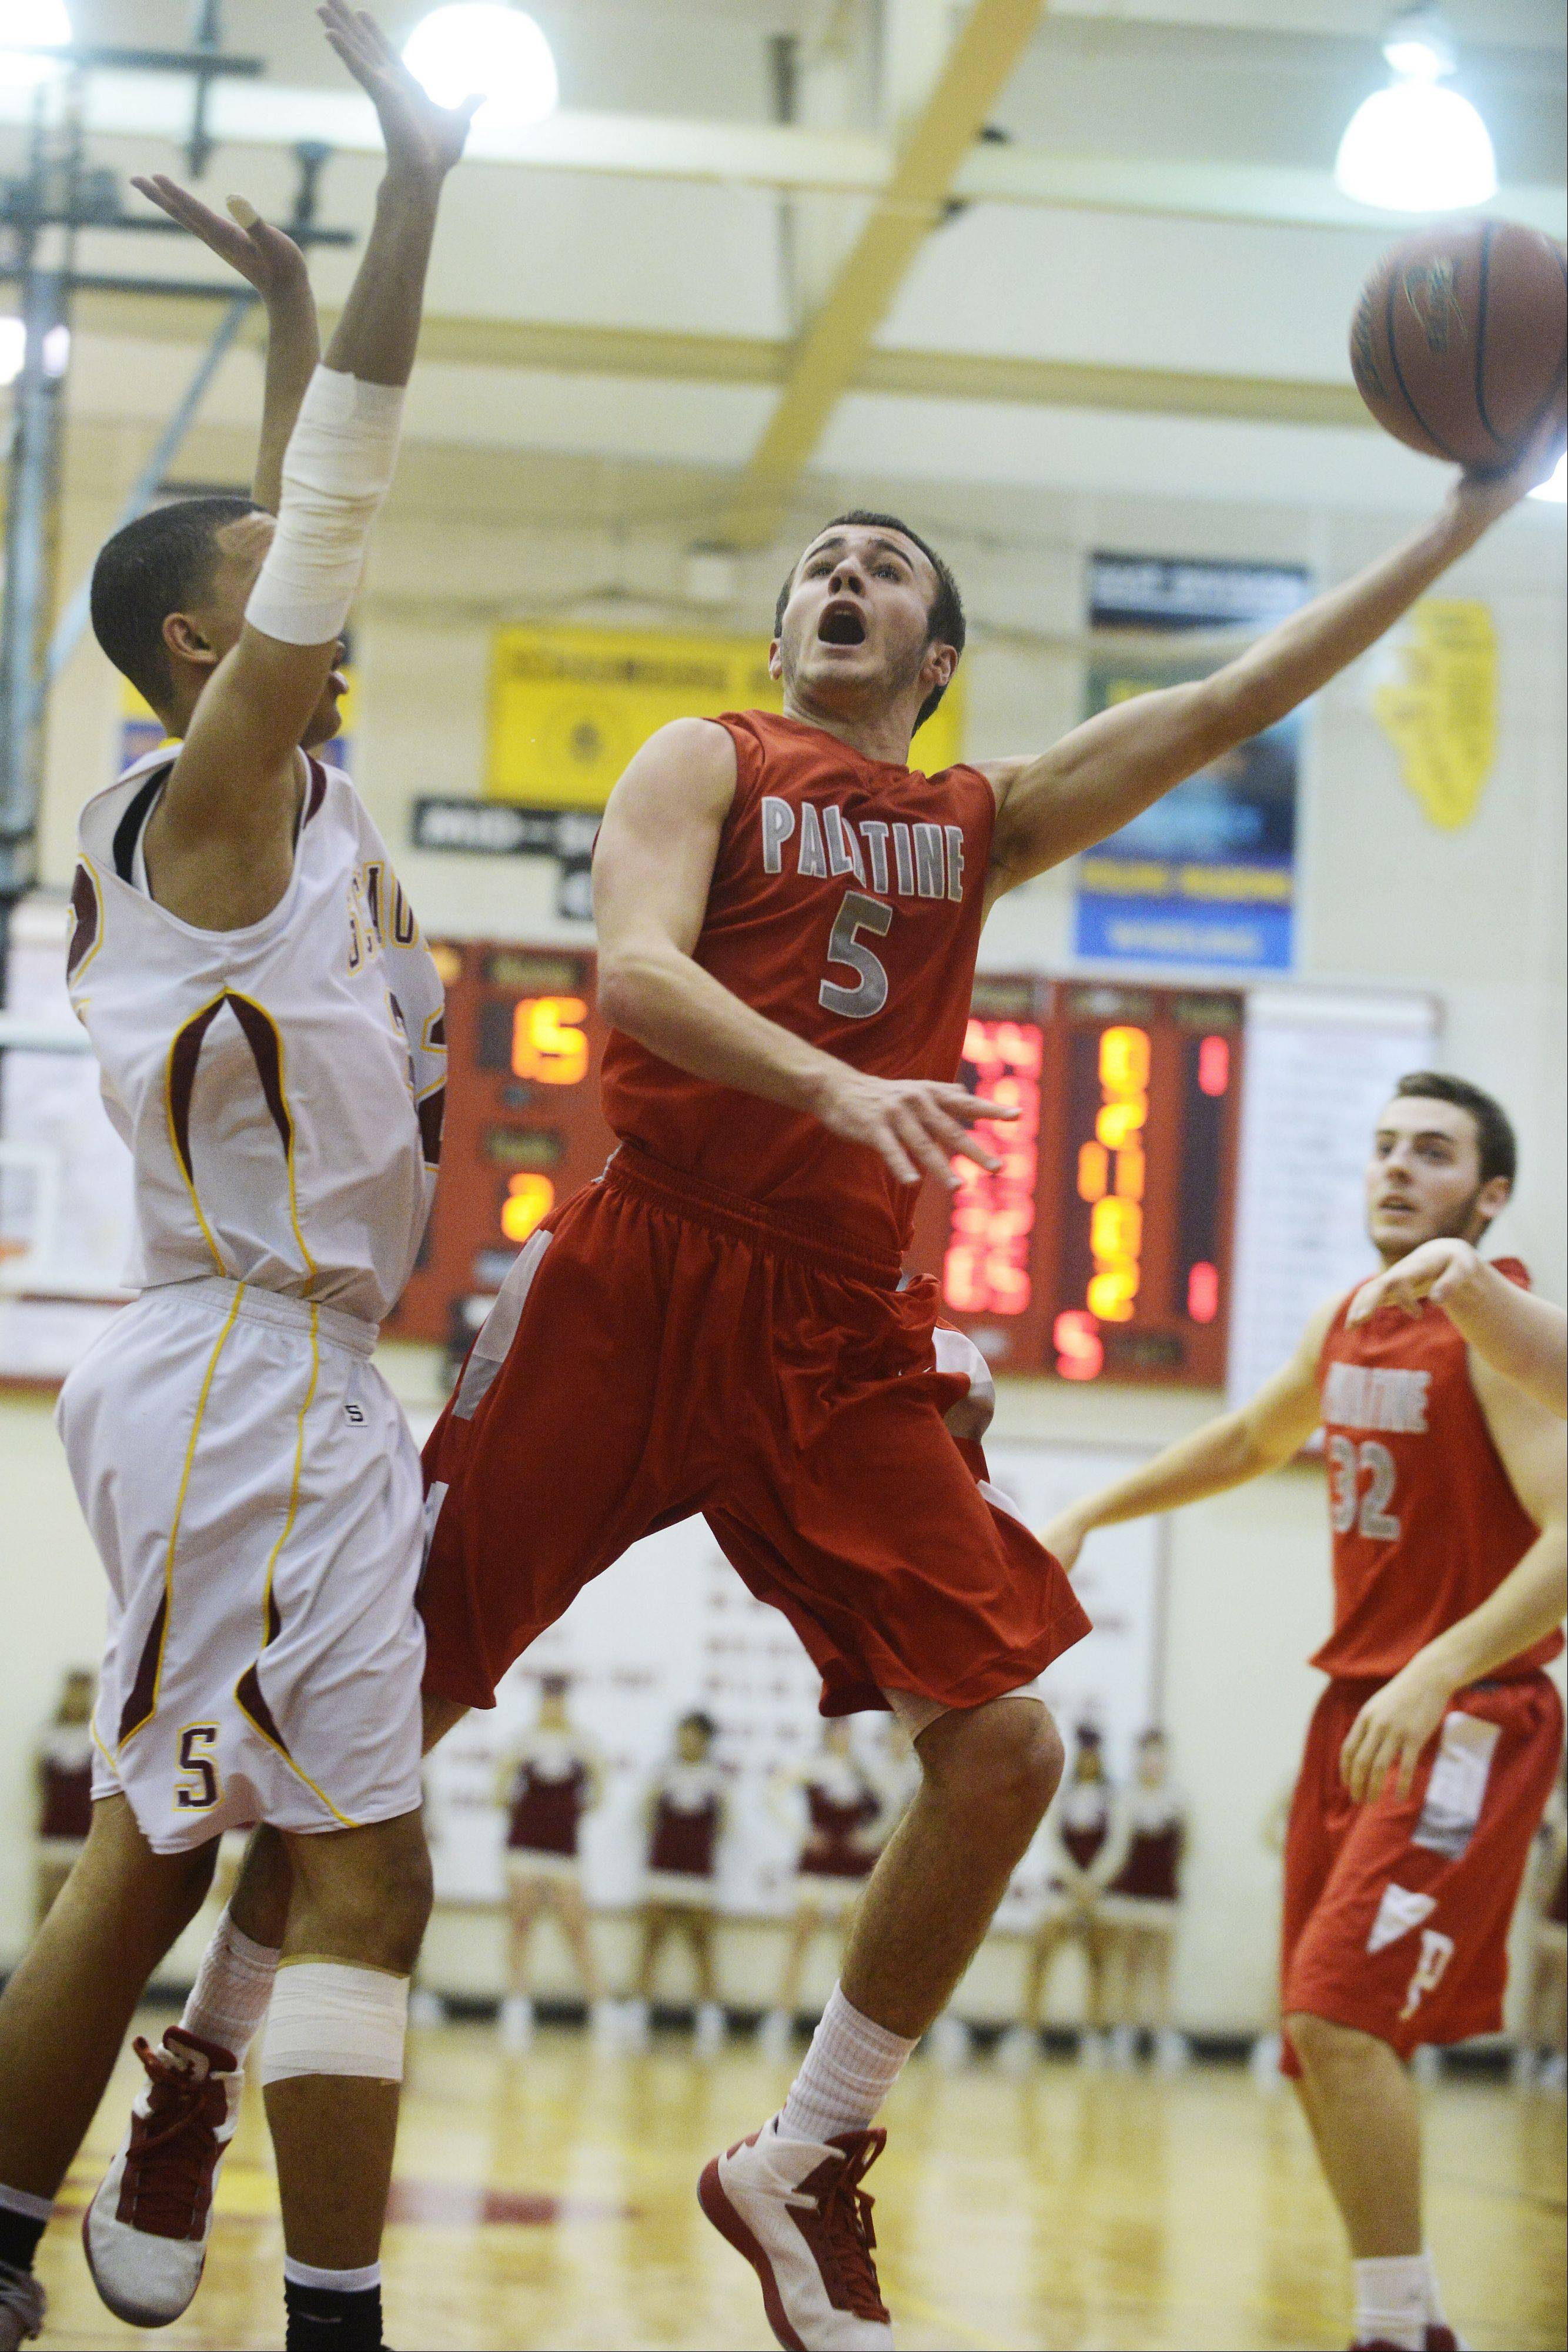 Palatine's Chris Macahon takes a layup against the defense of Schaumburg's Brandan Parker on Friday.